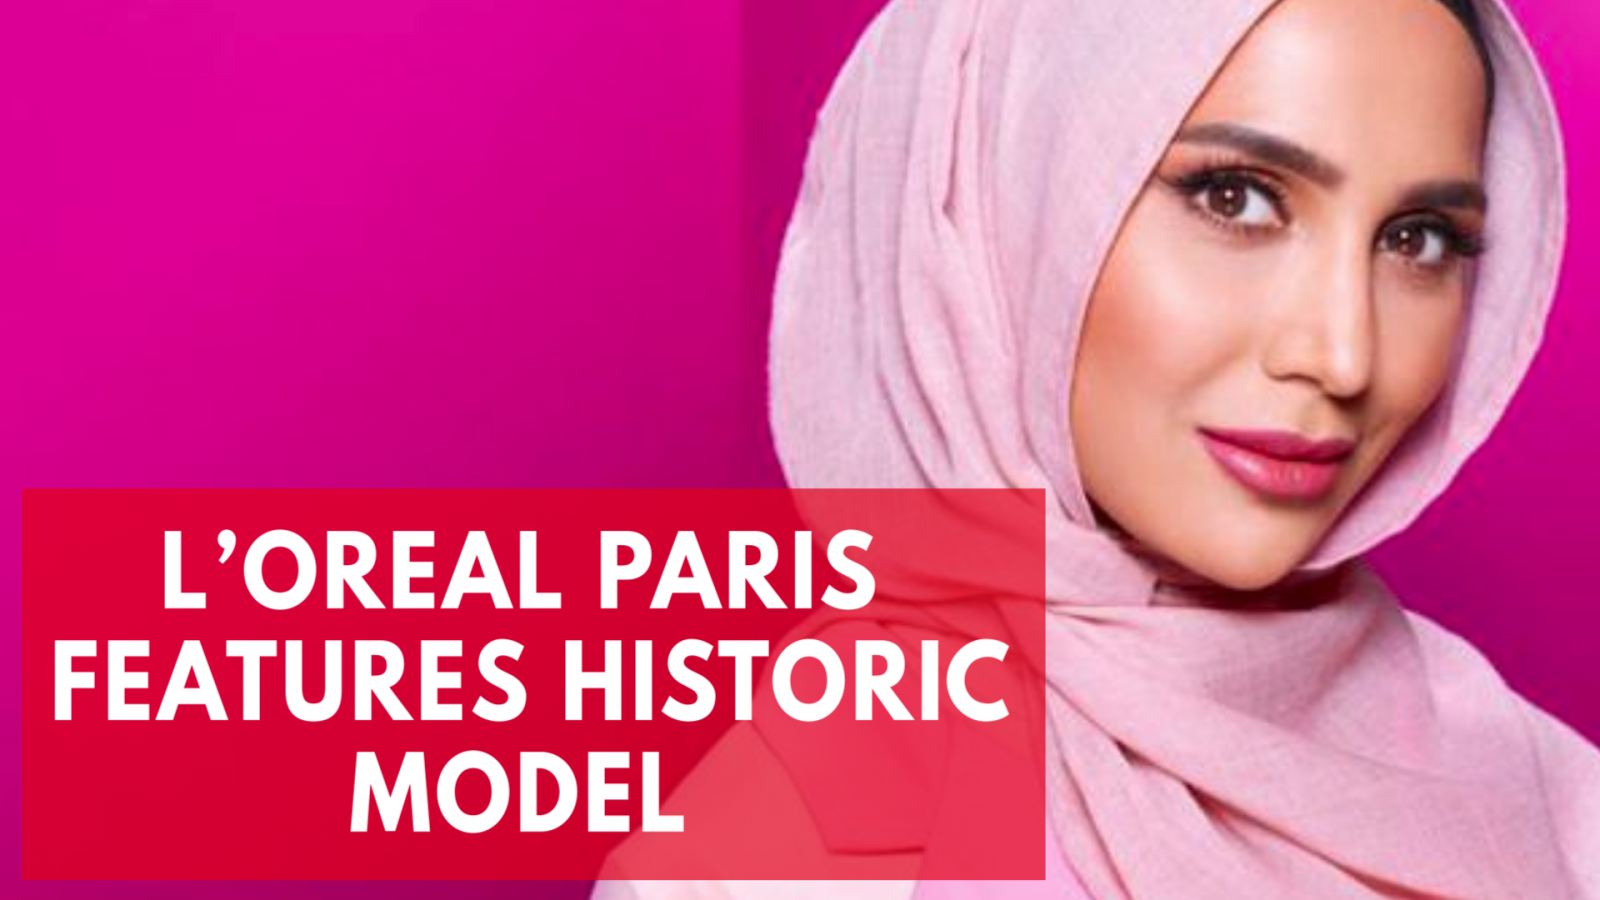 Hijab-wearing model fronts L'Oreal Paris hair campaign